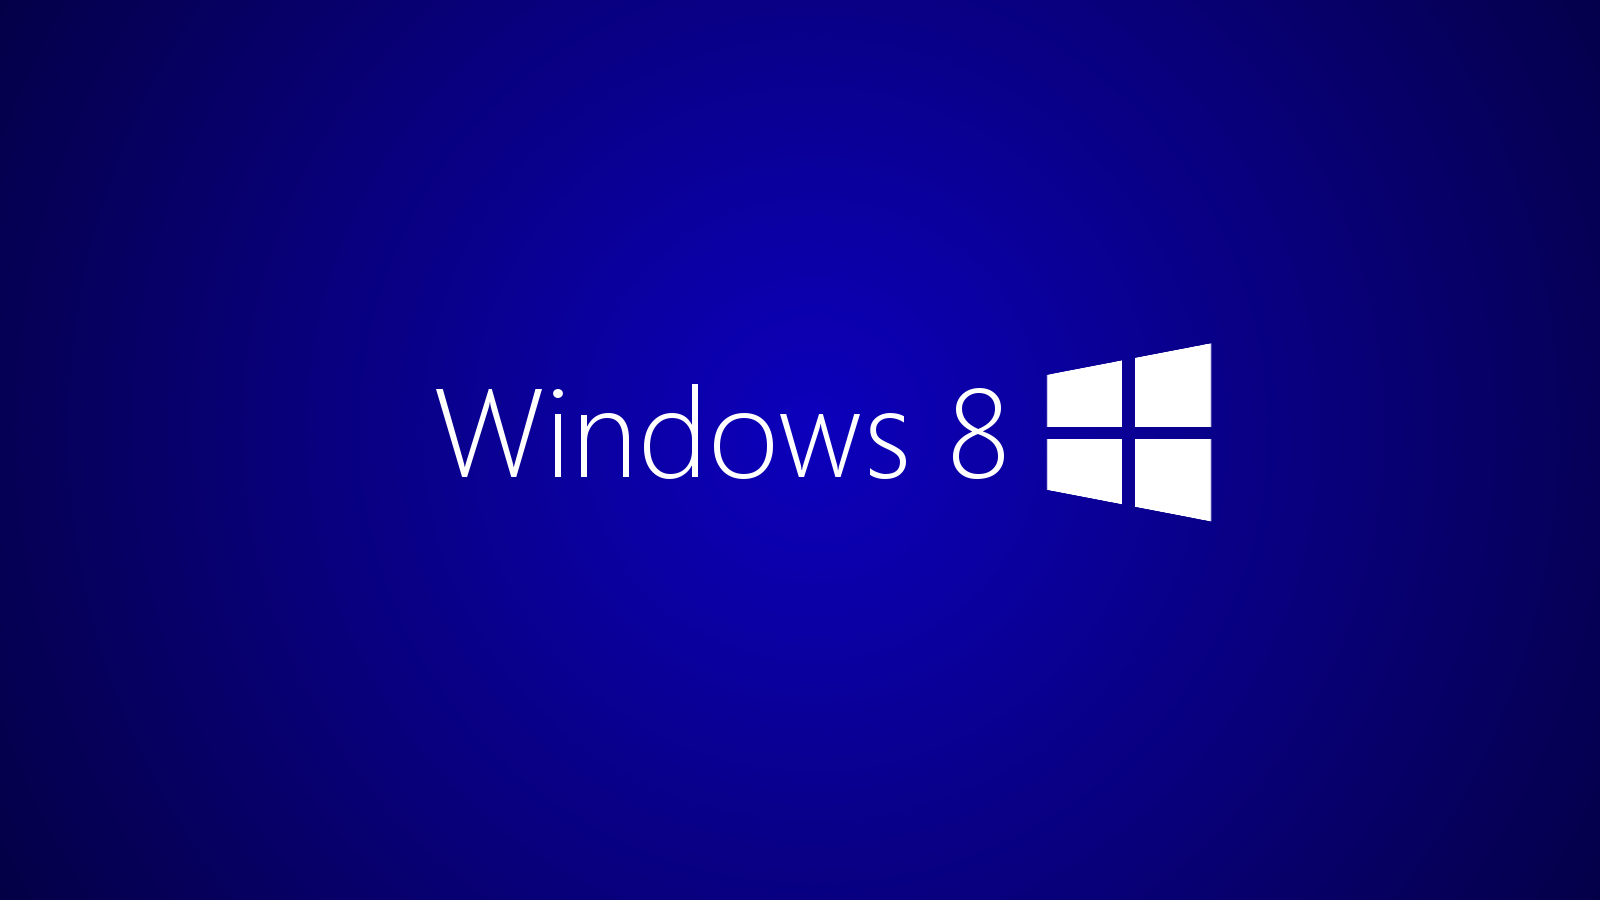 Windows 8 Official Wallpapers Wallpaper Cave Laptop Wallpaper Windows Wallpaper Windows